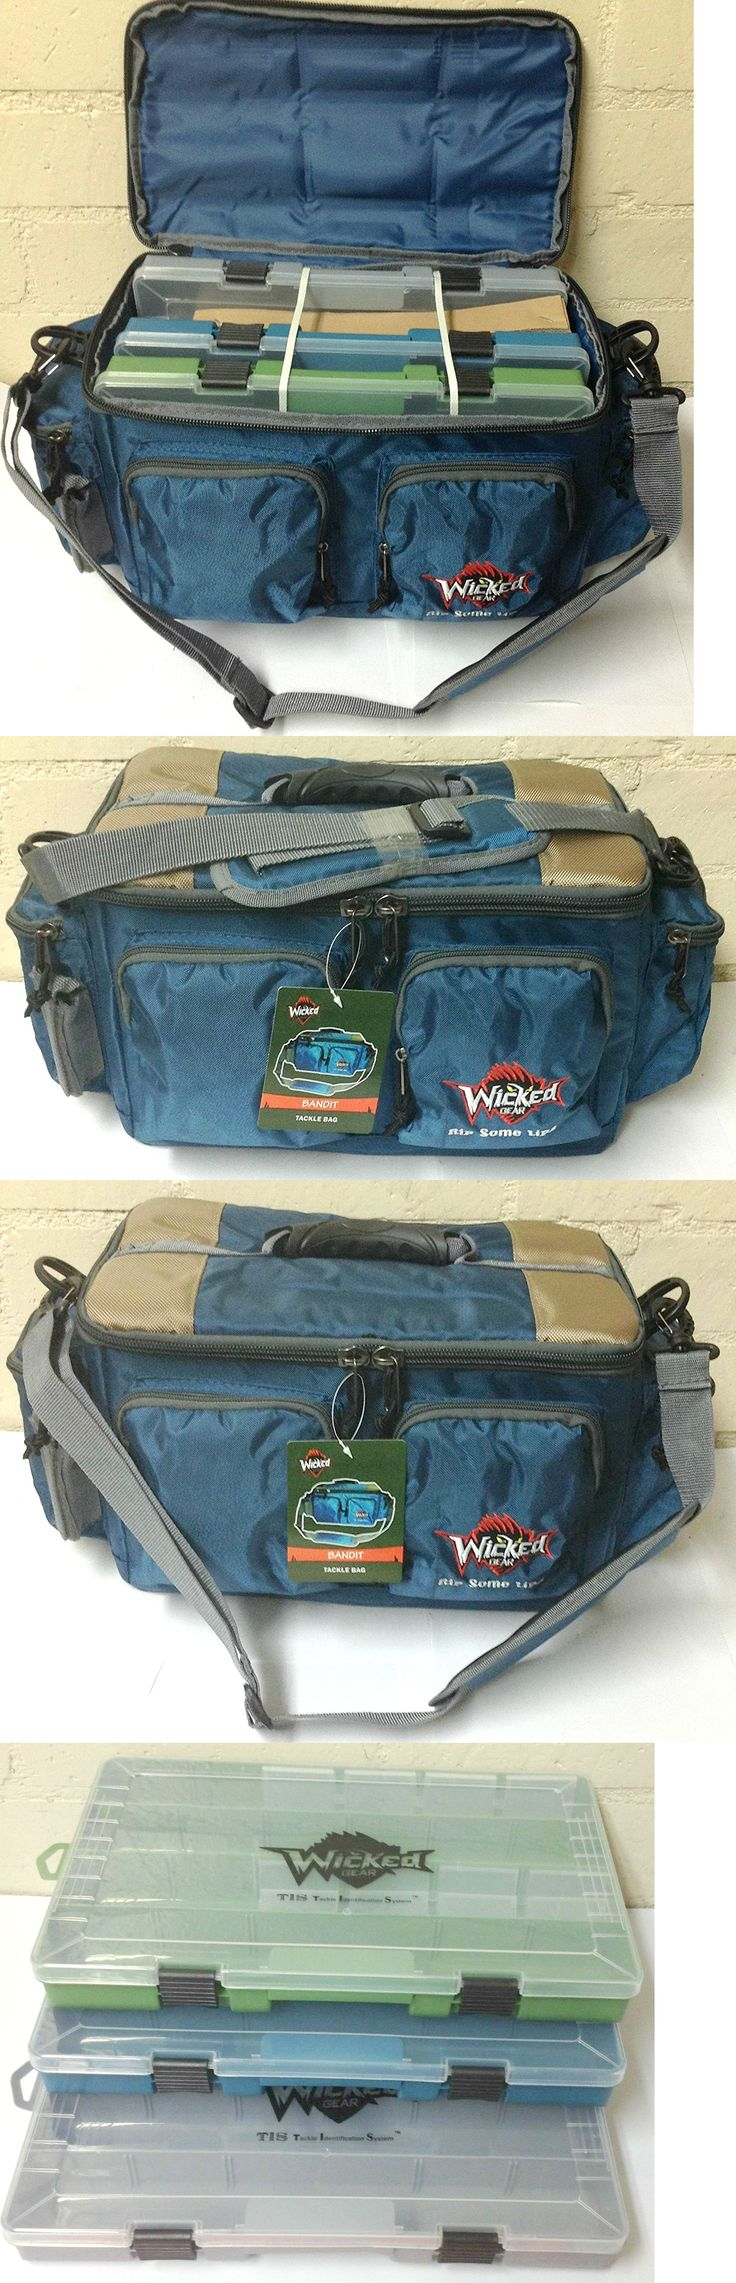 Fishing tackle craft supplies - Tackle Boxes And Bags 22696 Gift Idea Wicked Gear Fishing Tackle Duffle Bag W